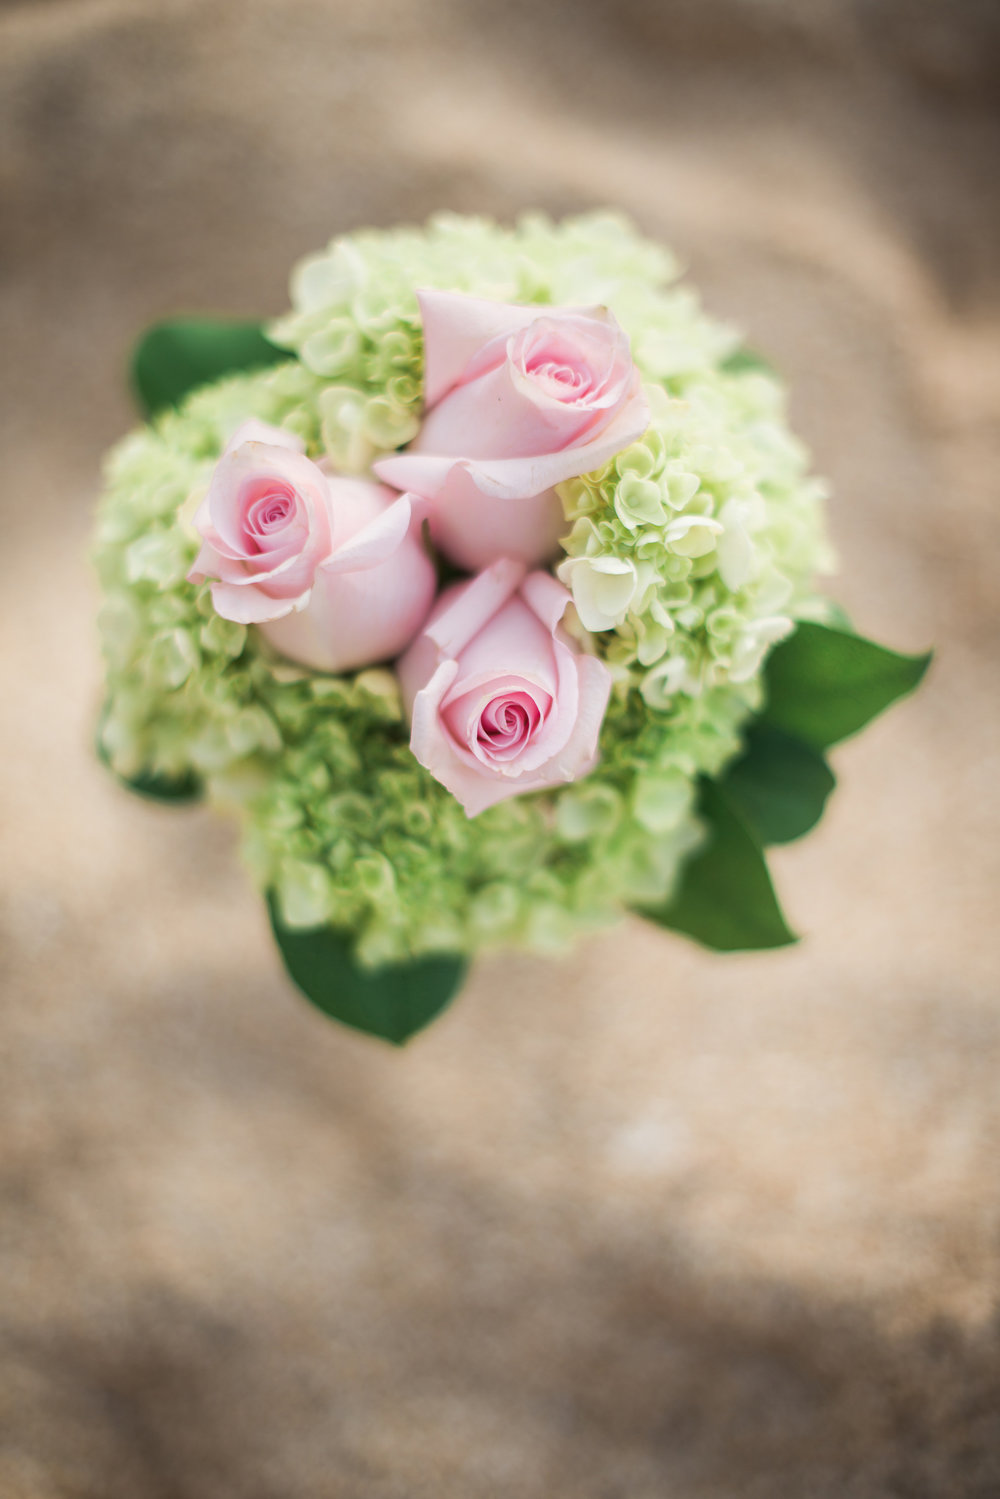 Hawaiian-Elopement-Marianne-Blackham-Photography-bouquet.jpg